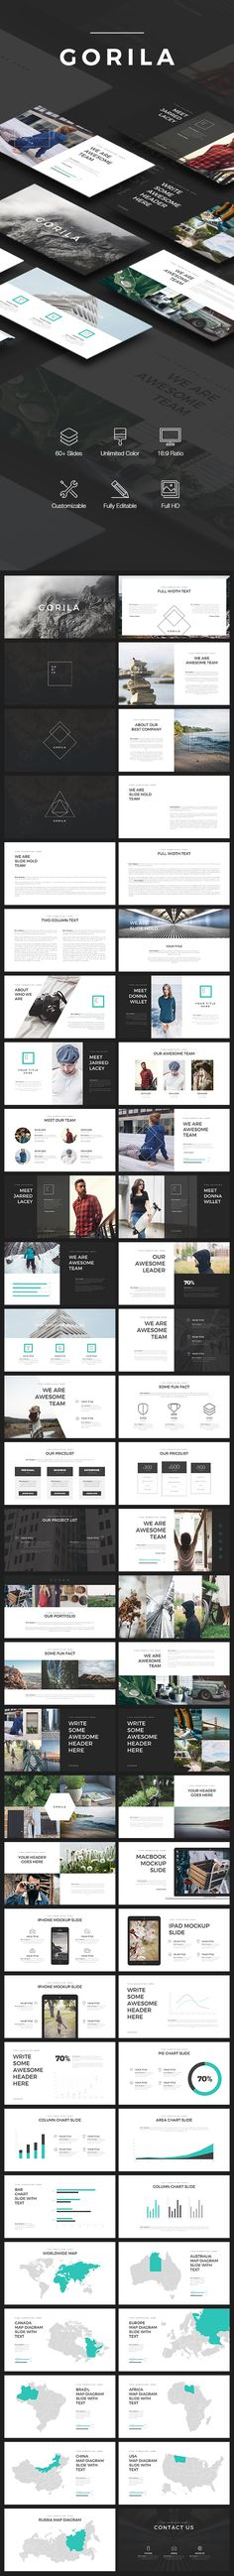 208 best powerpoint template images on pinterest in 2018 page